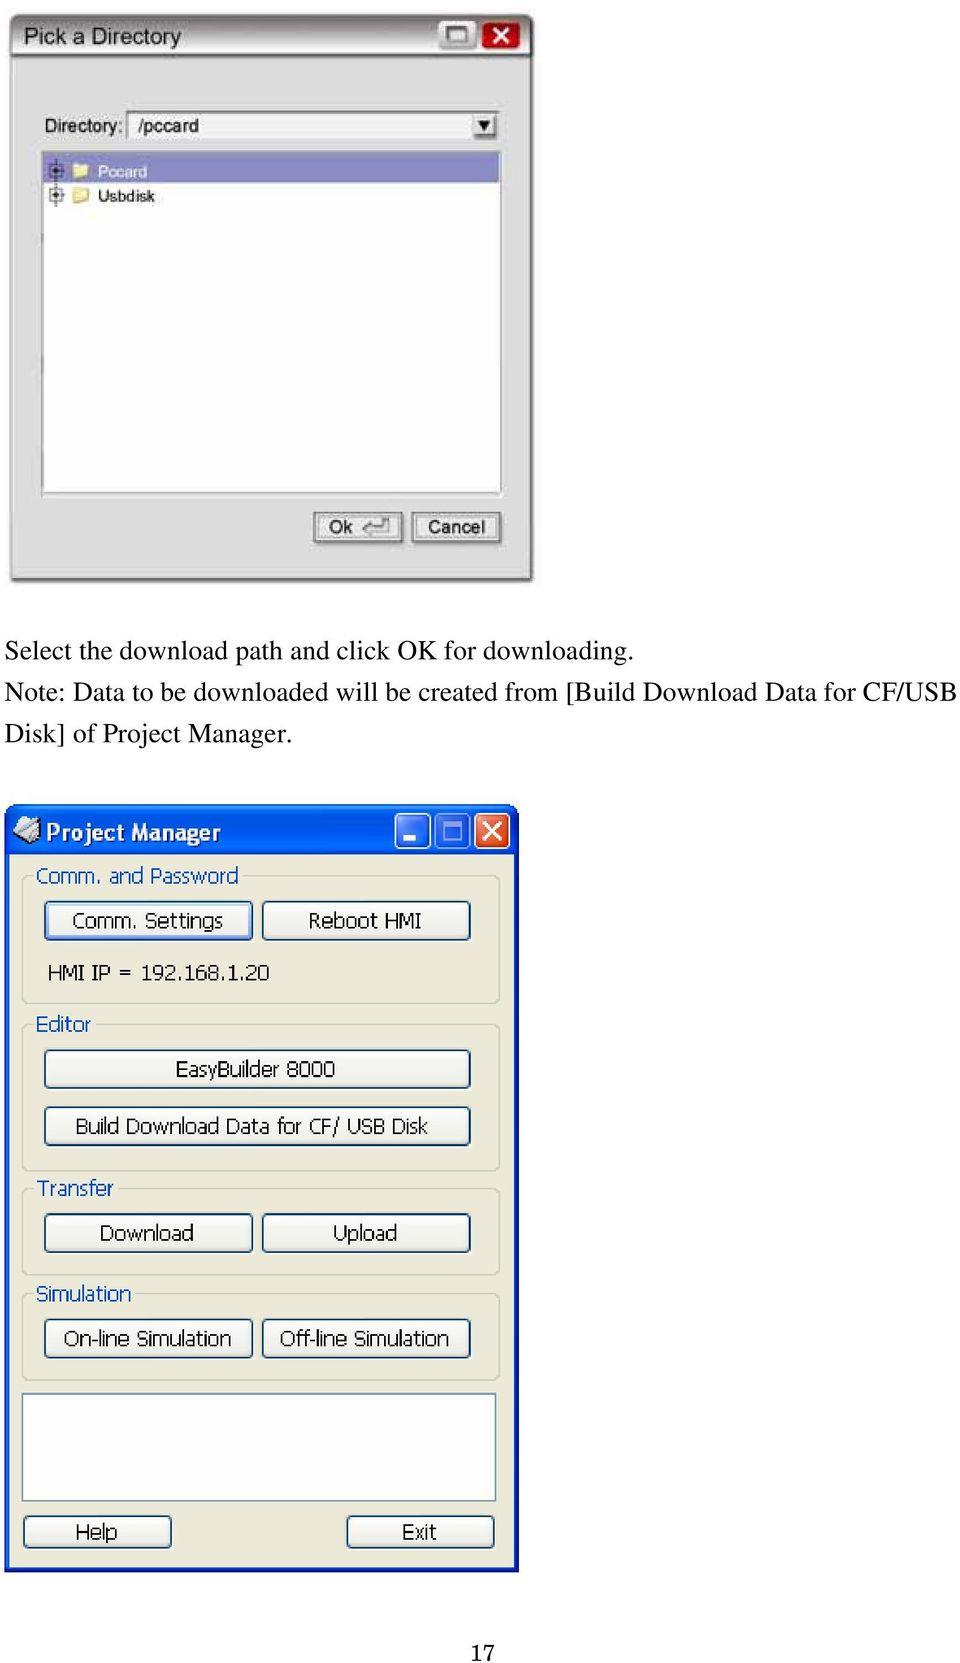 docplayer net/docs-images/47/20848342/images/page_